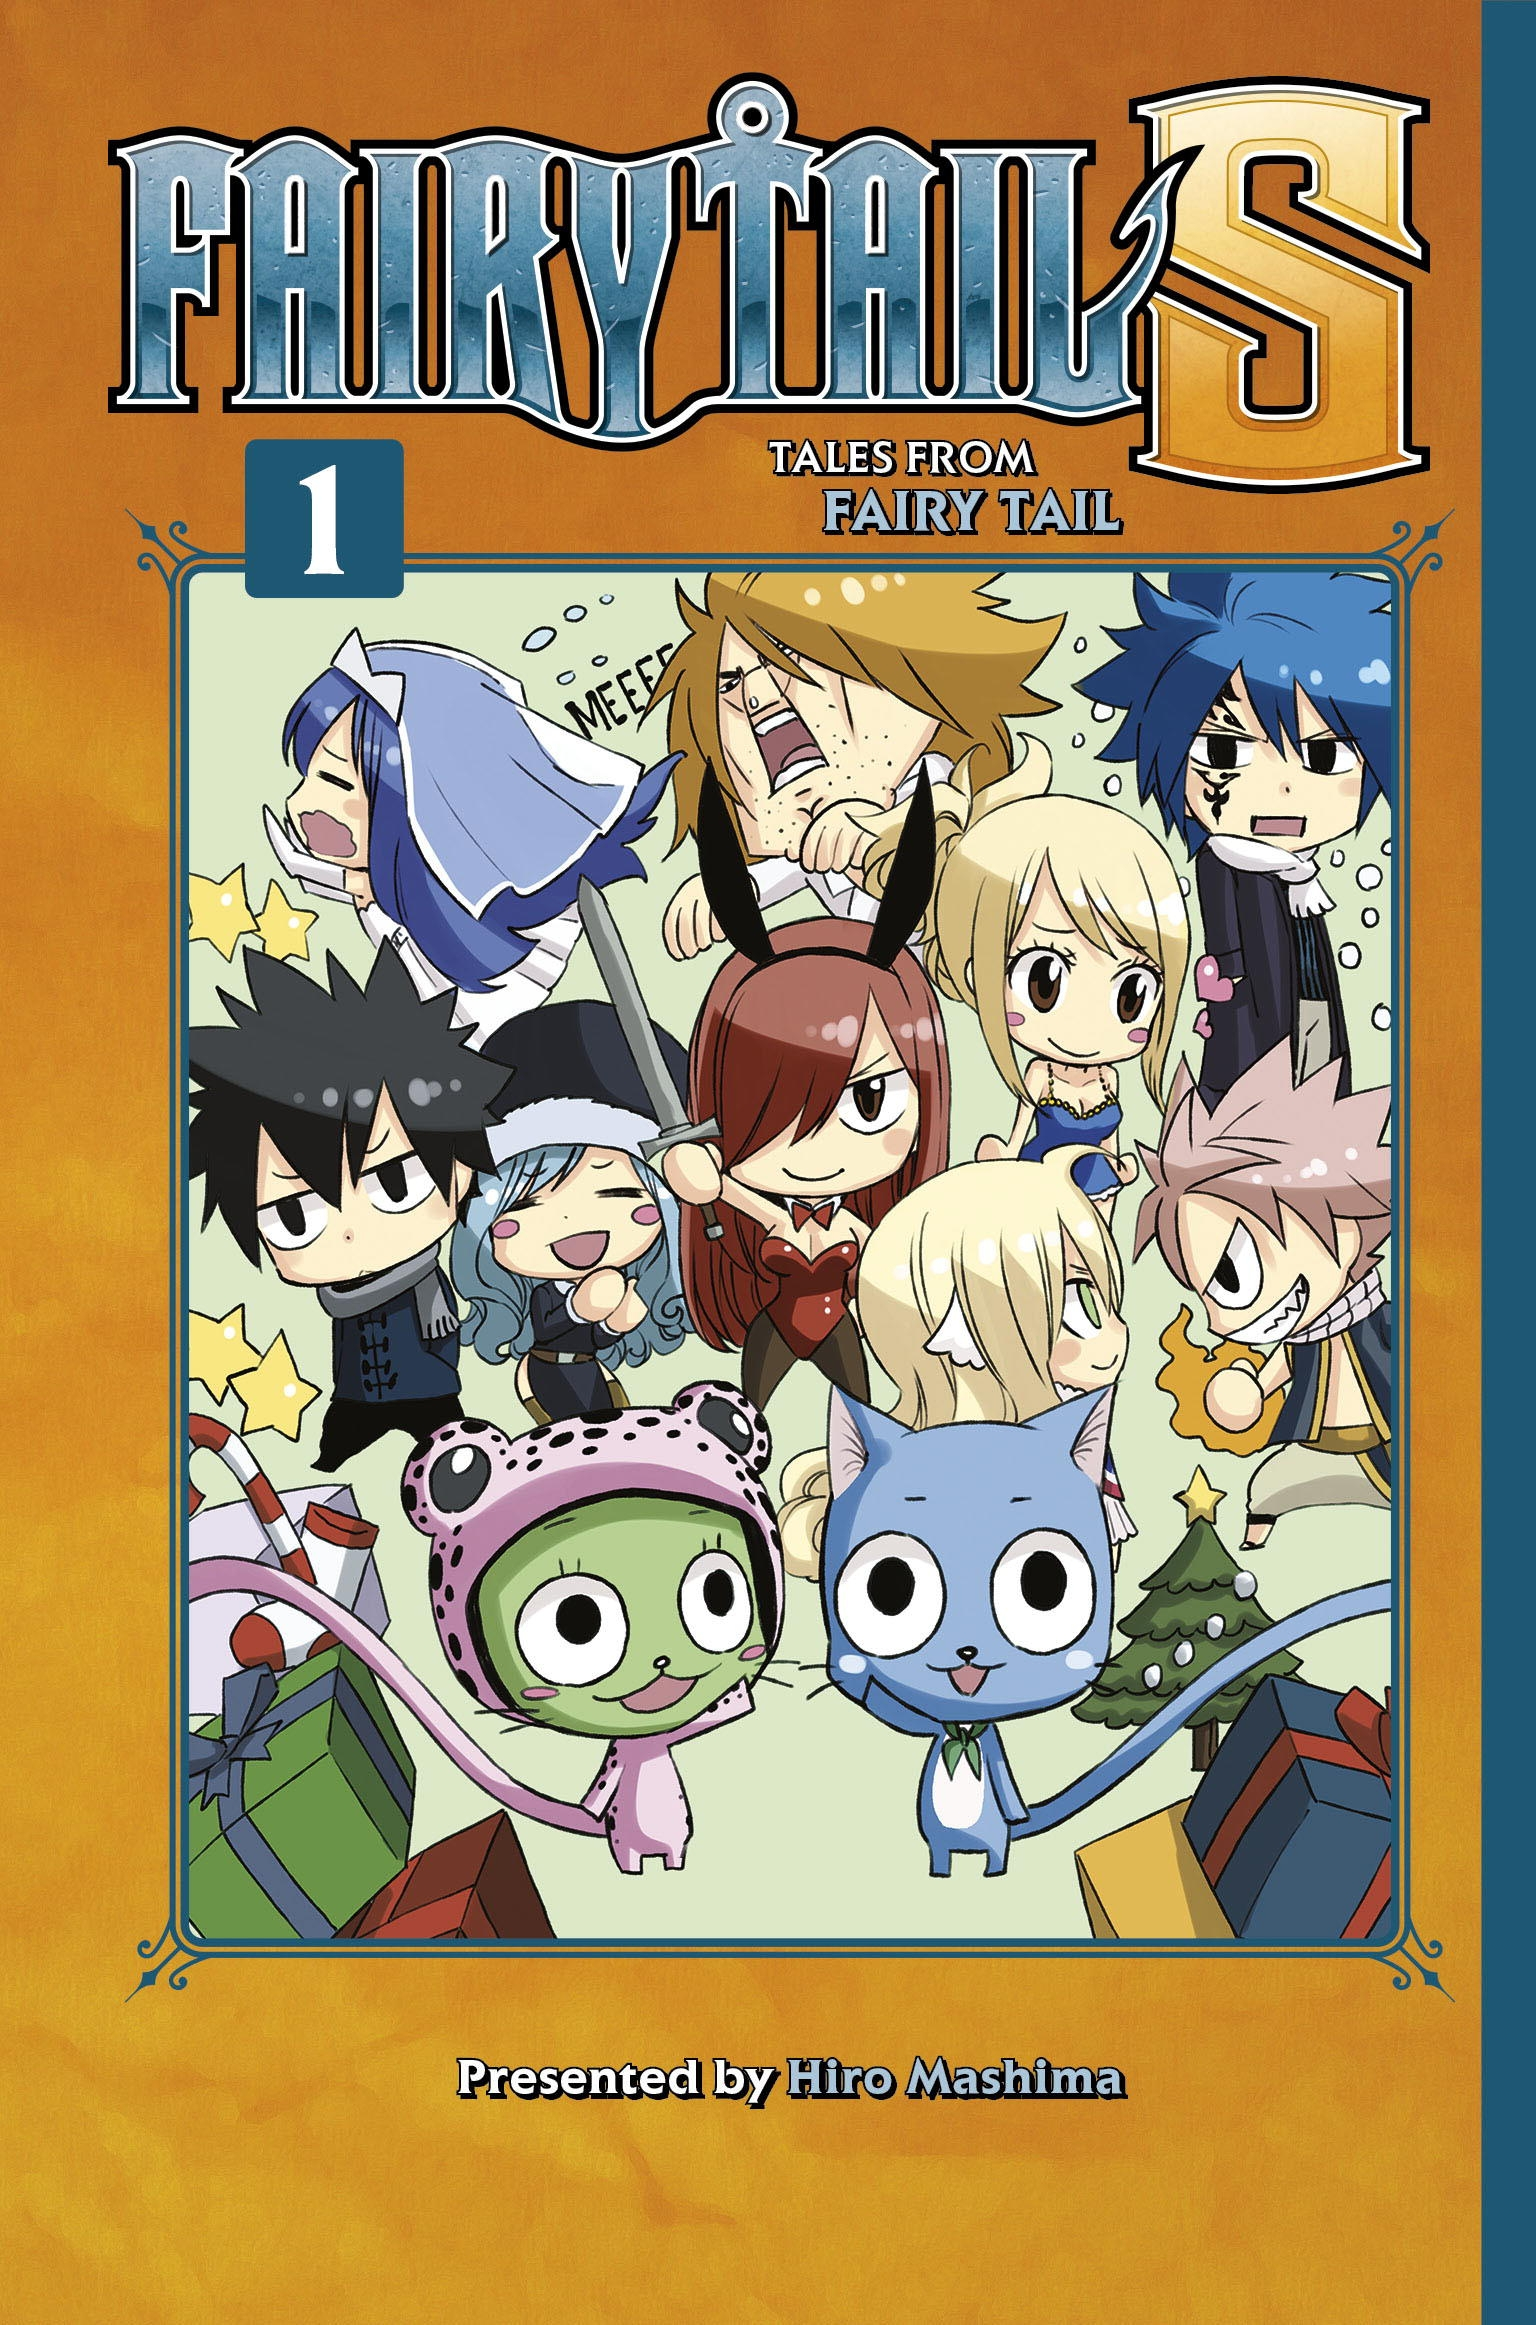 Fairy Tail S Volume 1 Tales From Fairy Tail By Hiro